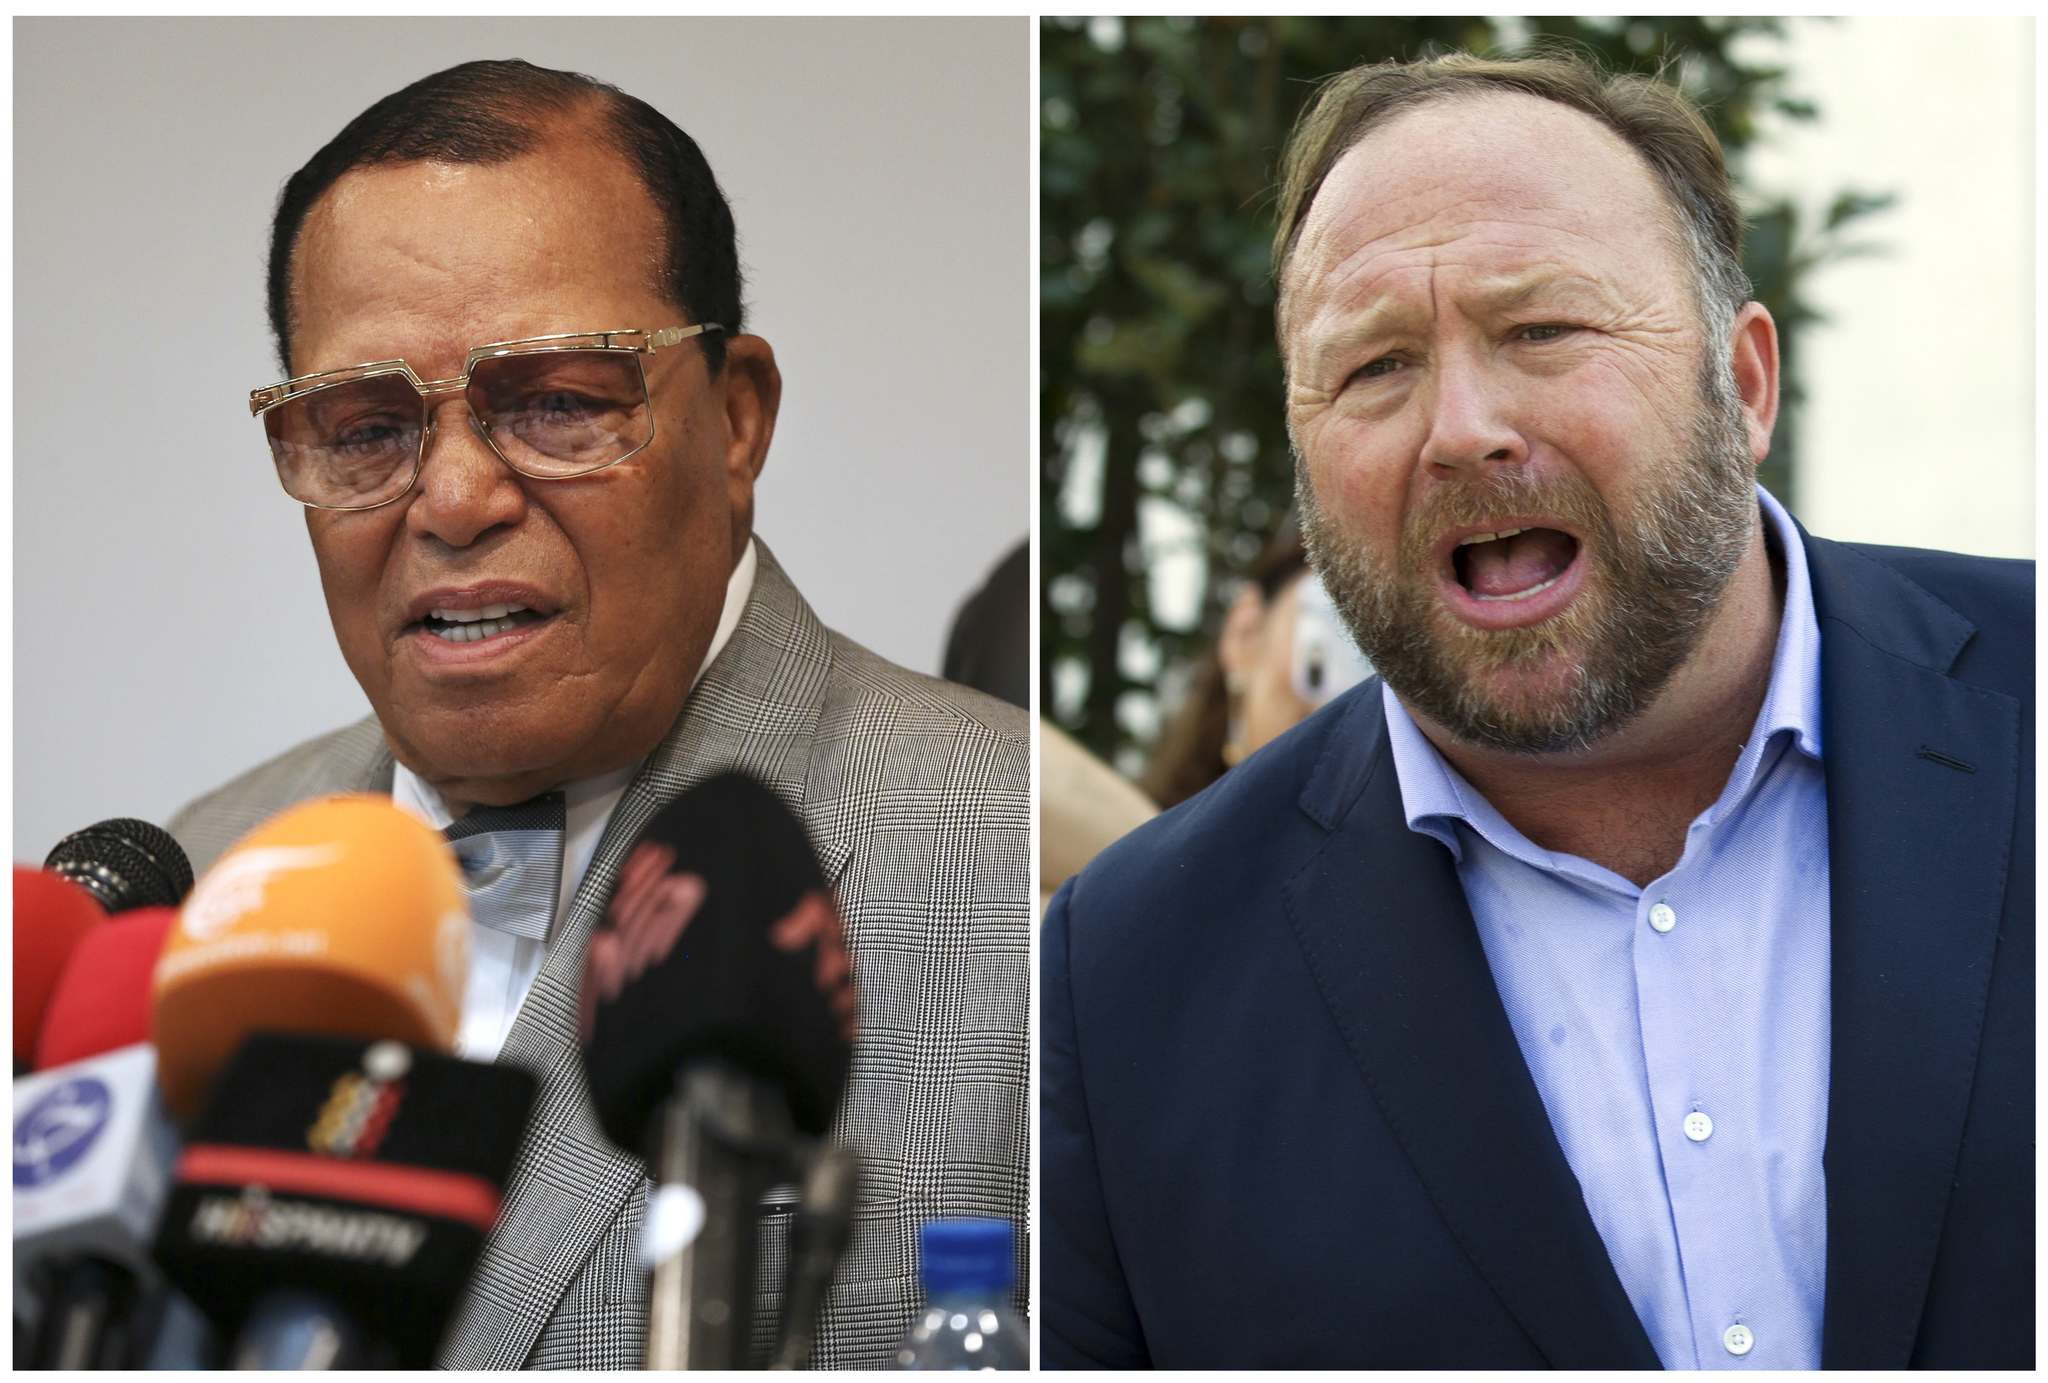 Louis Farrakhan (left), the leader of the Nation of Islam, and conspiracy theorist Alex Jones were banned by Facebook this week for violating its ban against hate and violence. (The Associated Press files)